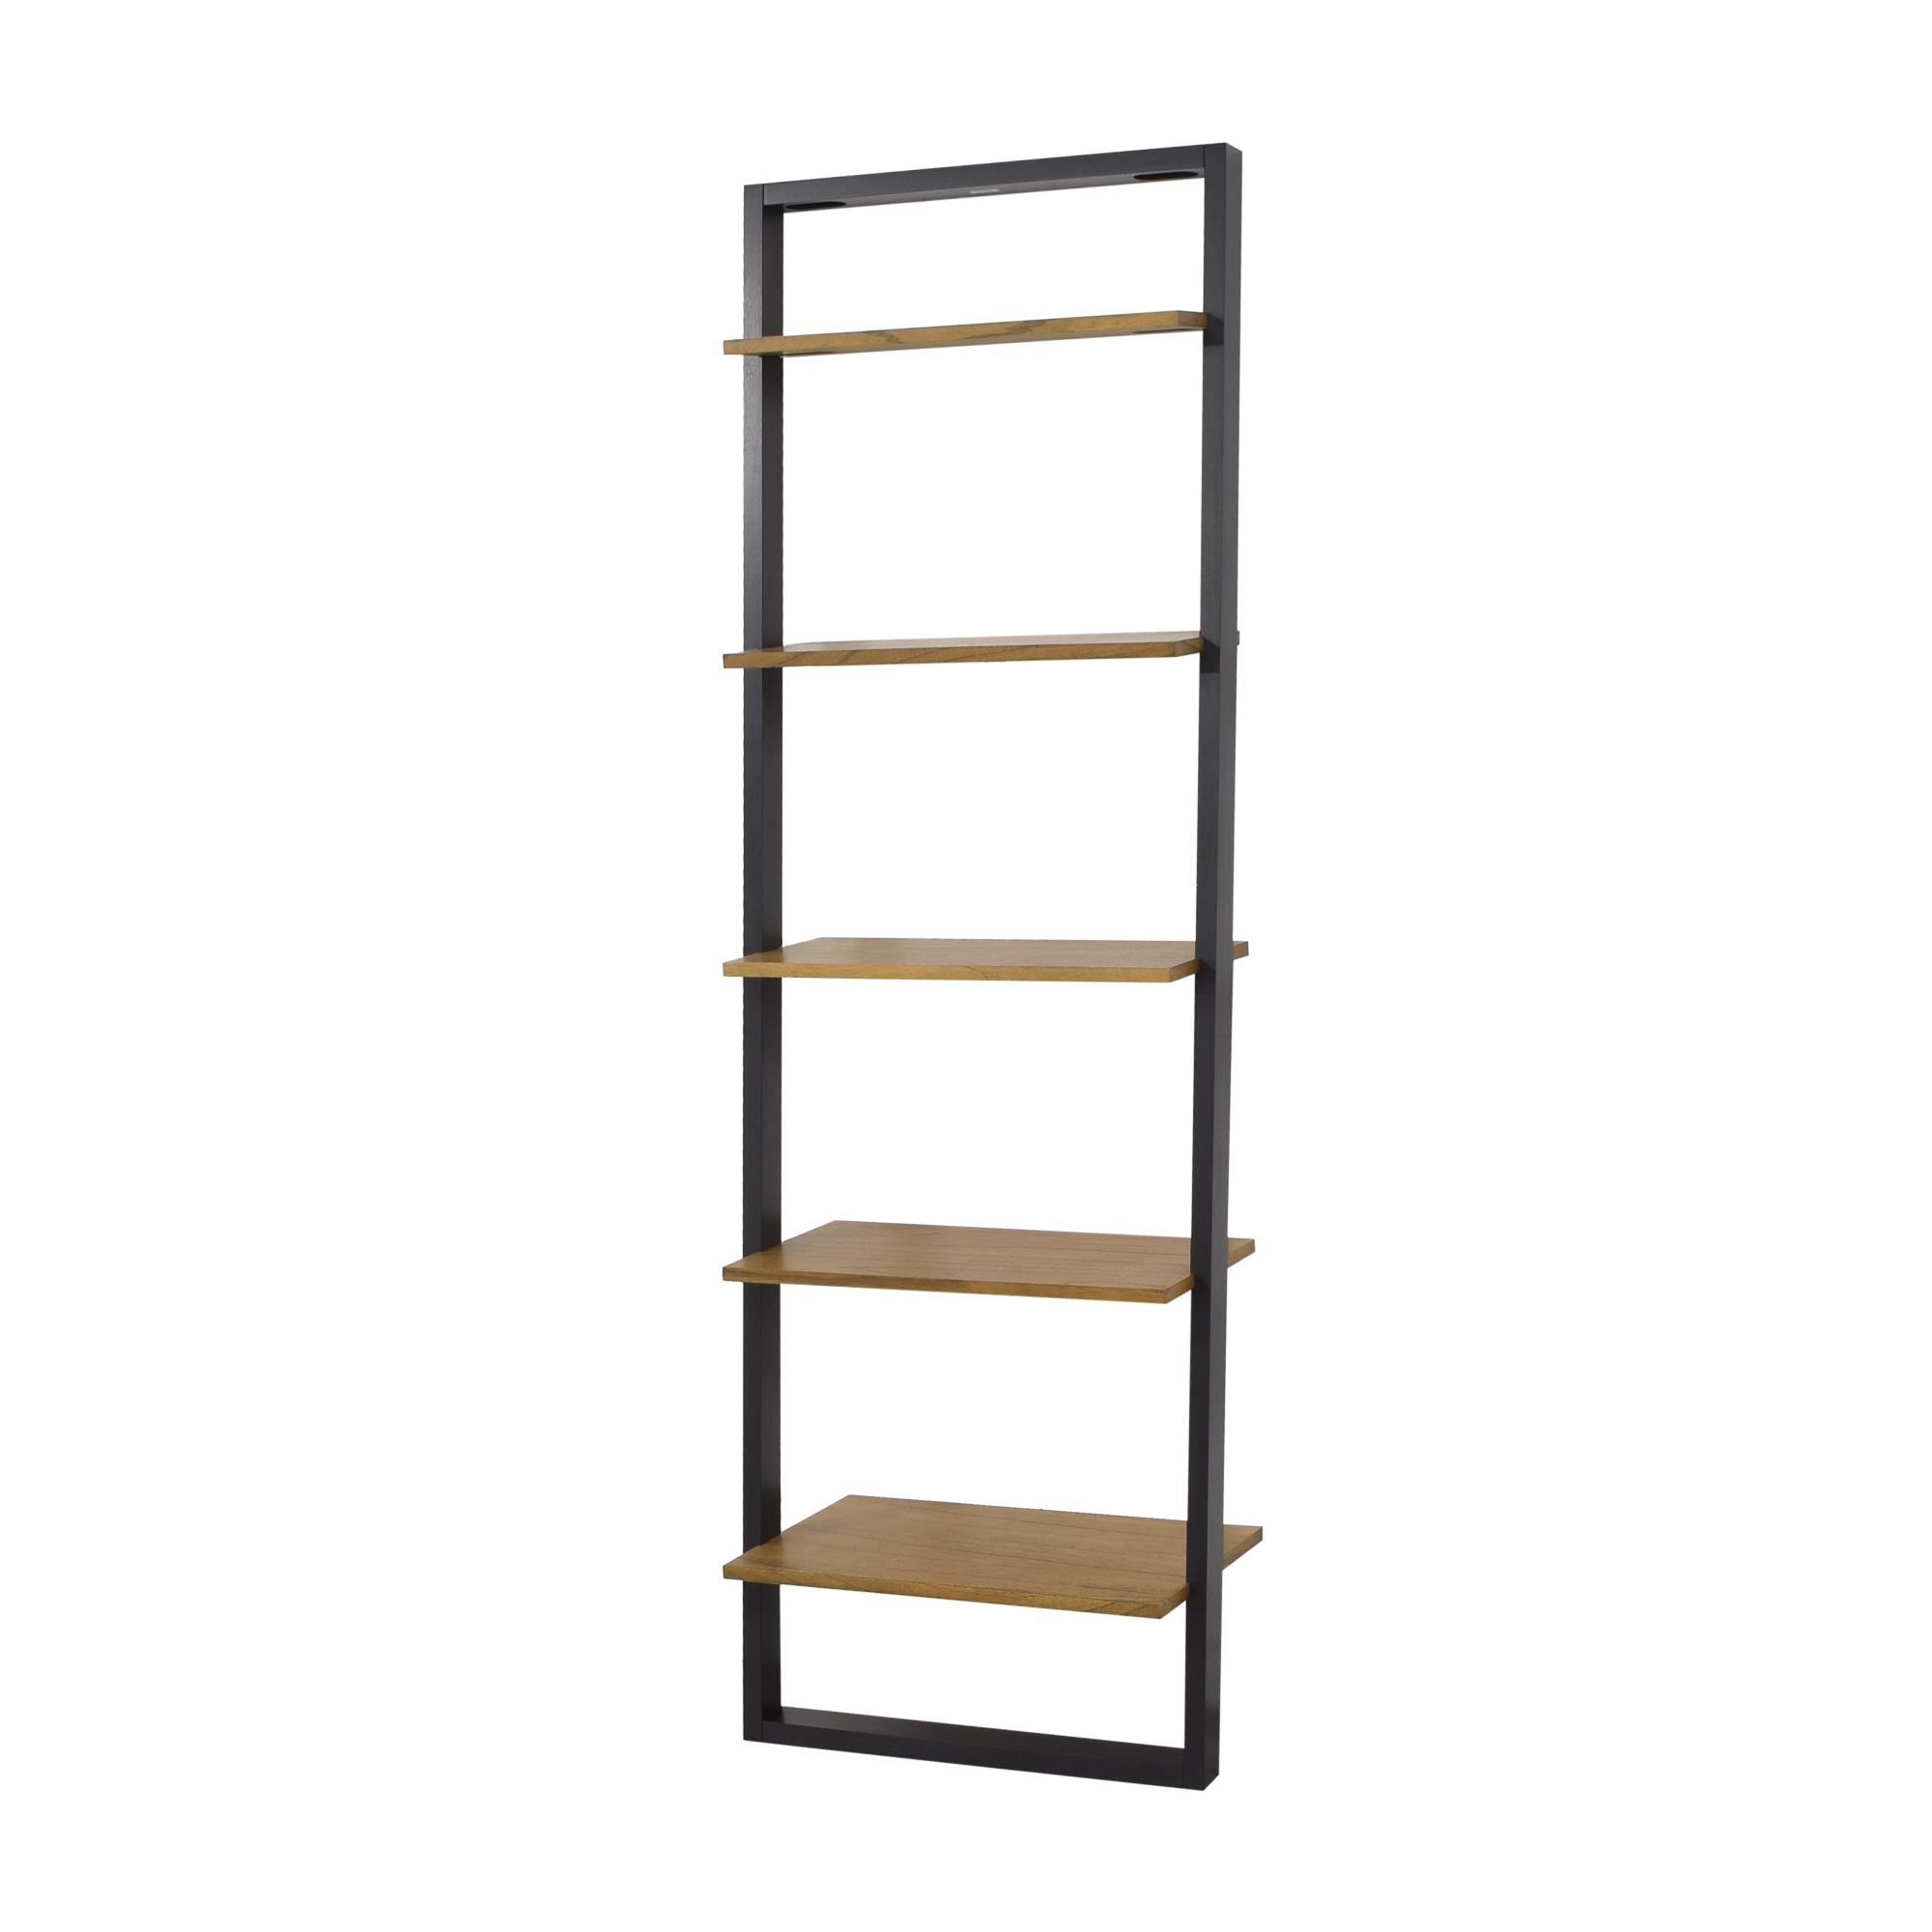 West Elm West Elm Wide Ladder Bookshelf Bookcases & Shelving